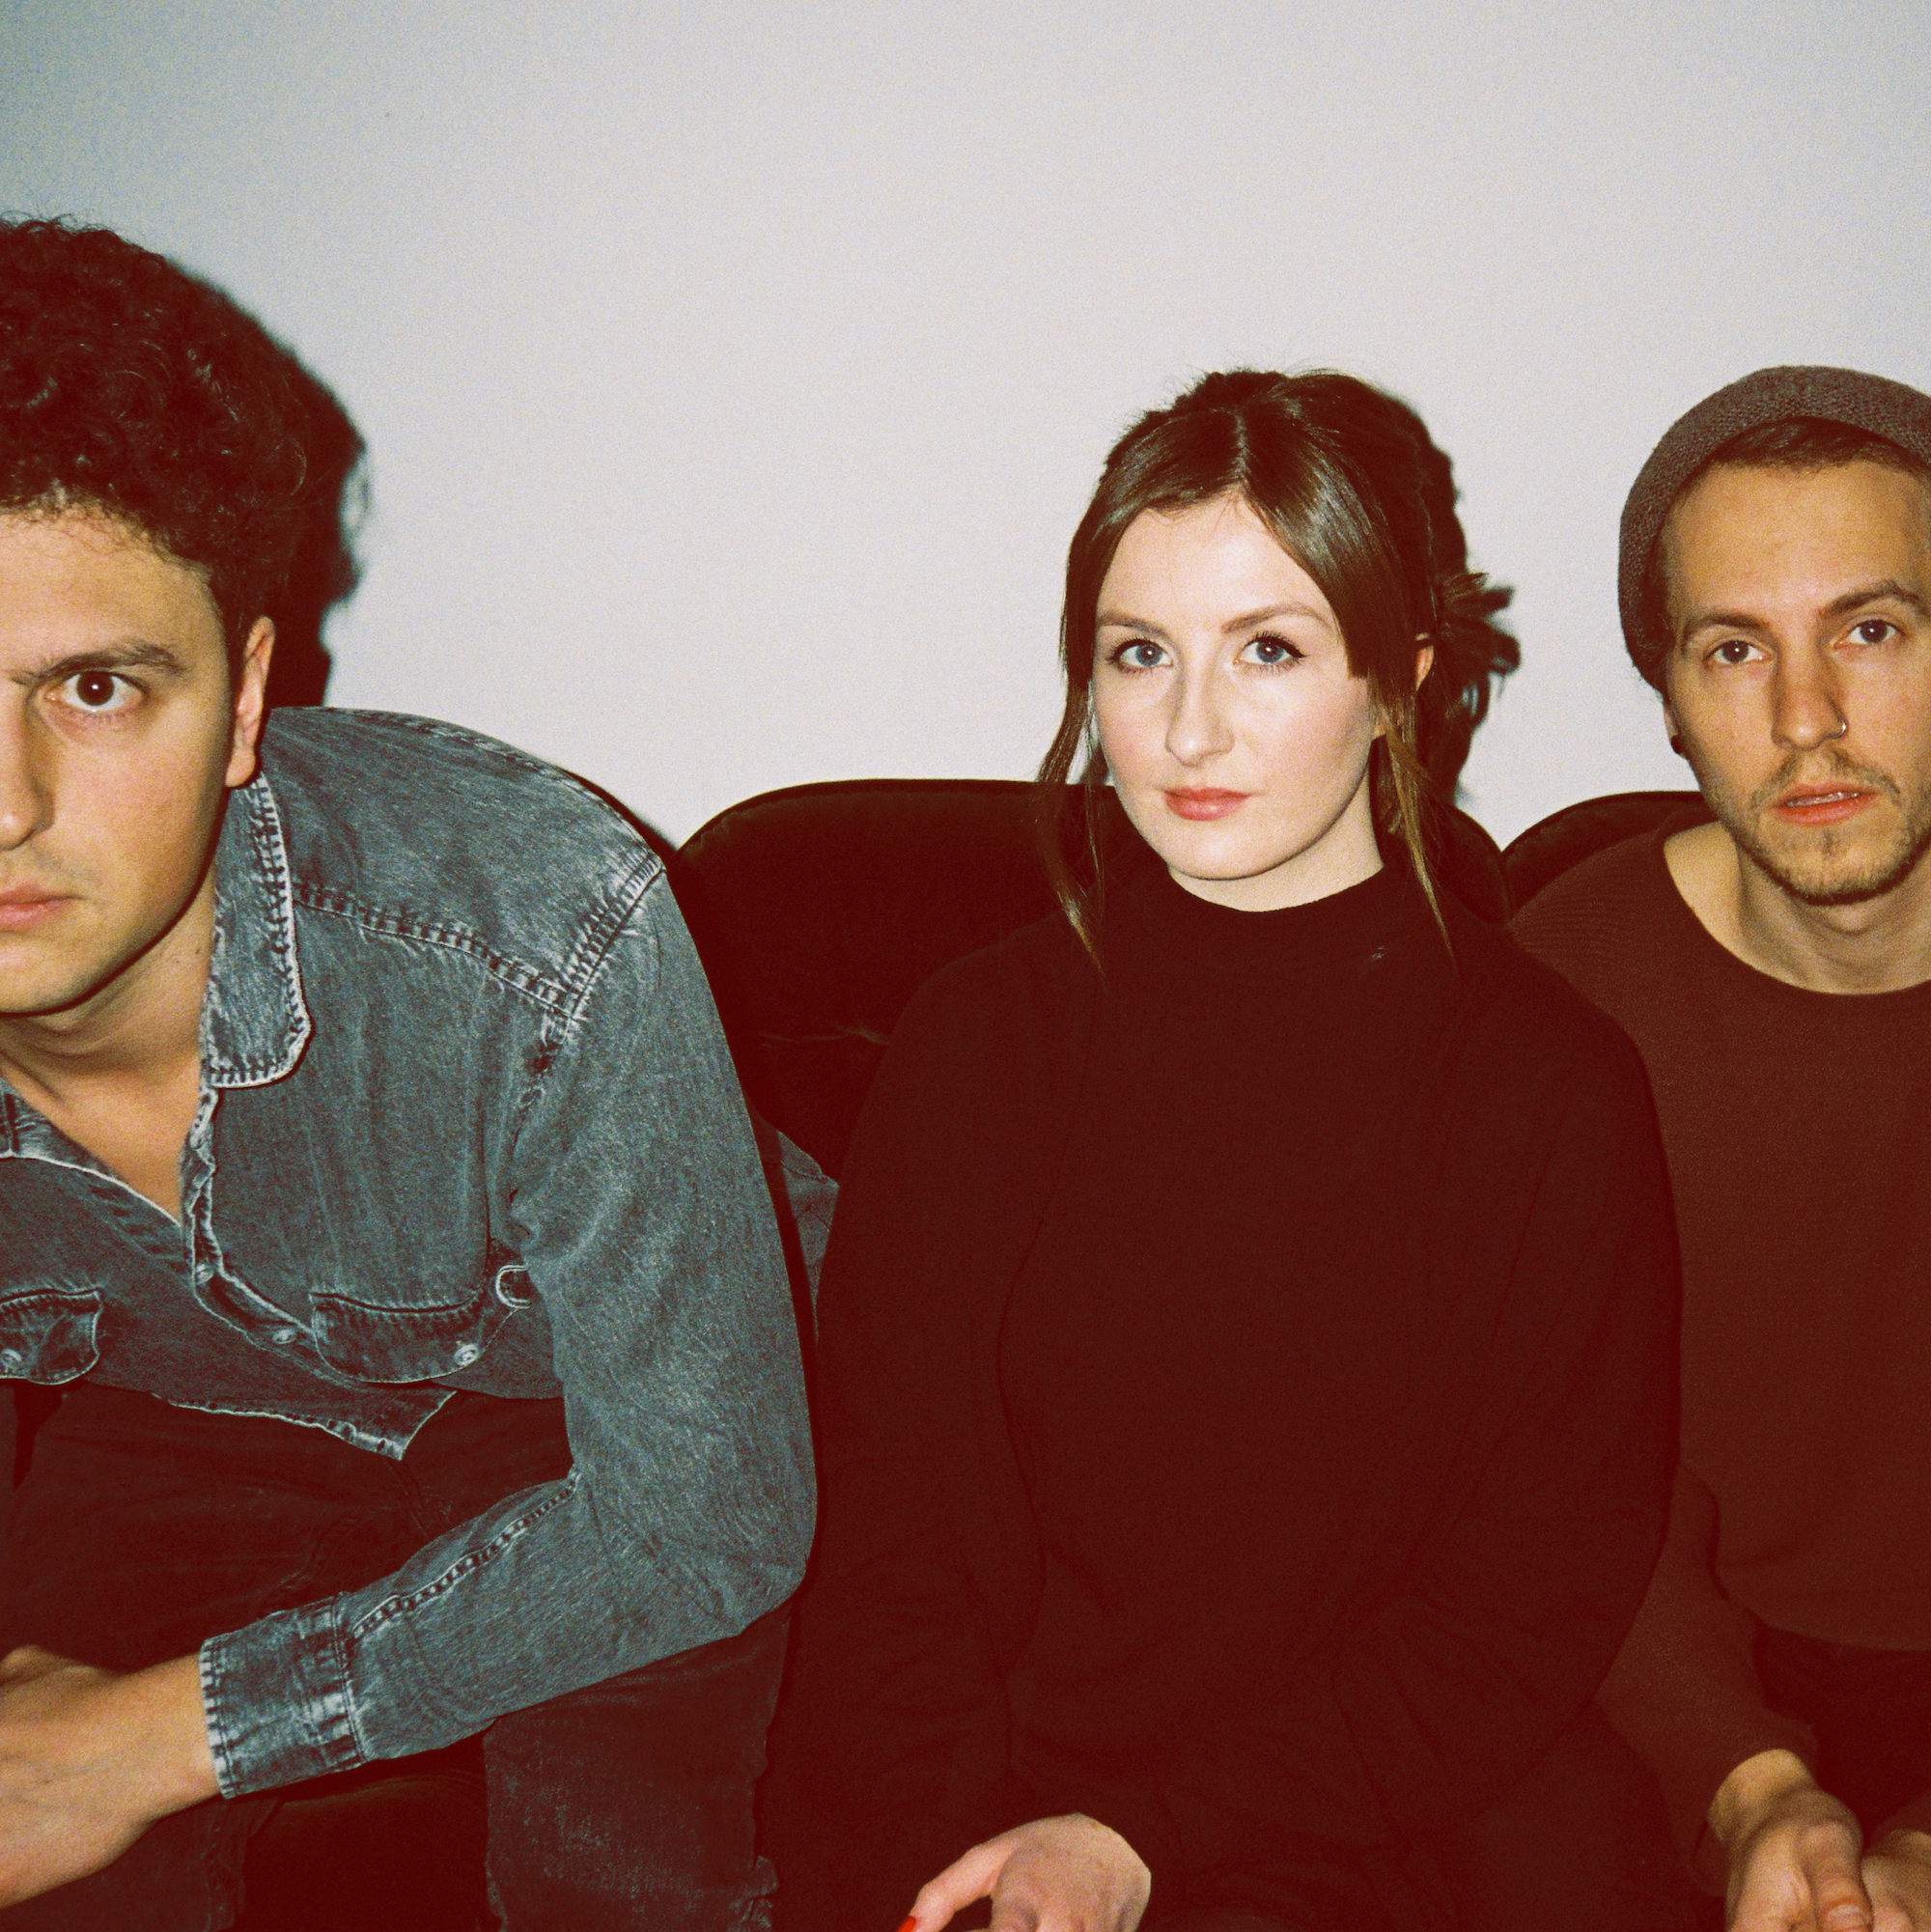 New Berlin-based trio VARLEY release their second official single Lonely Were the Days, on Seahorse Music.